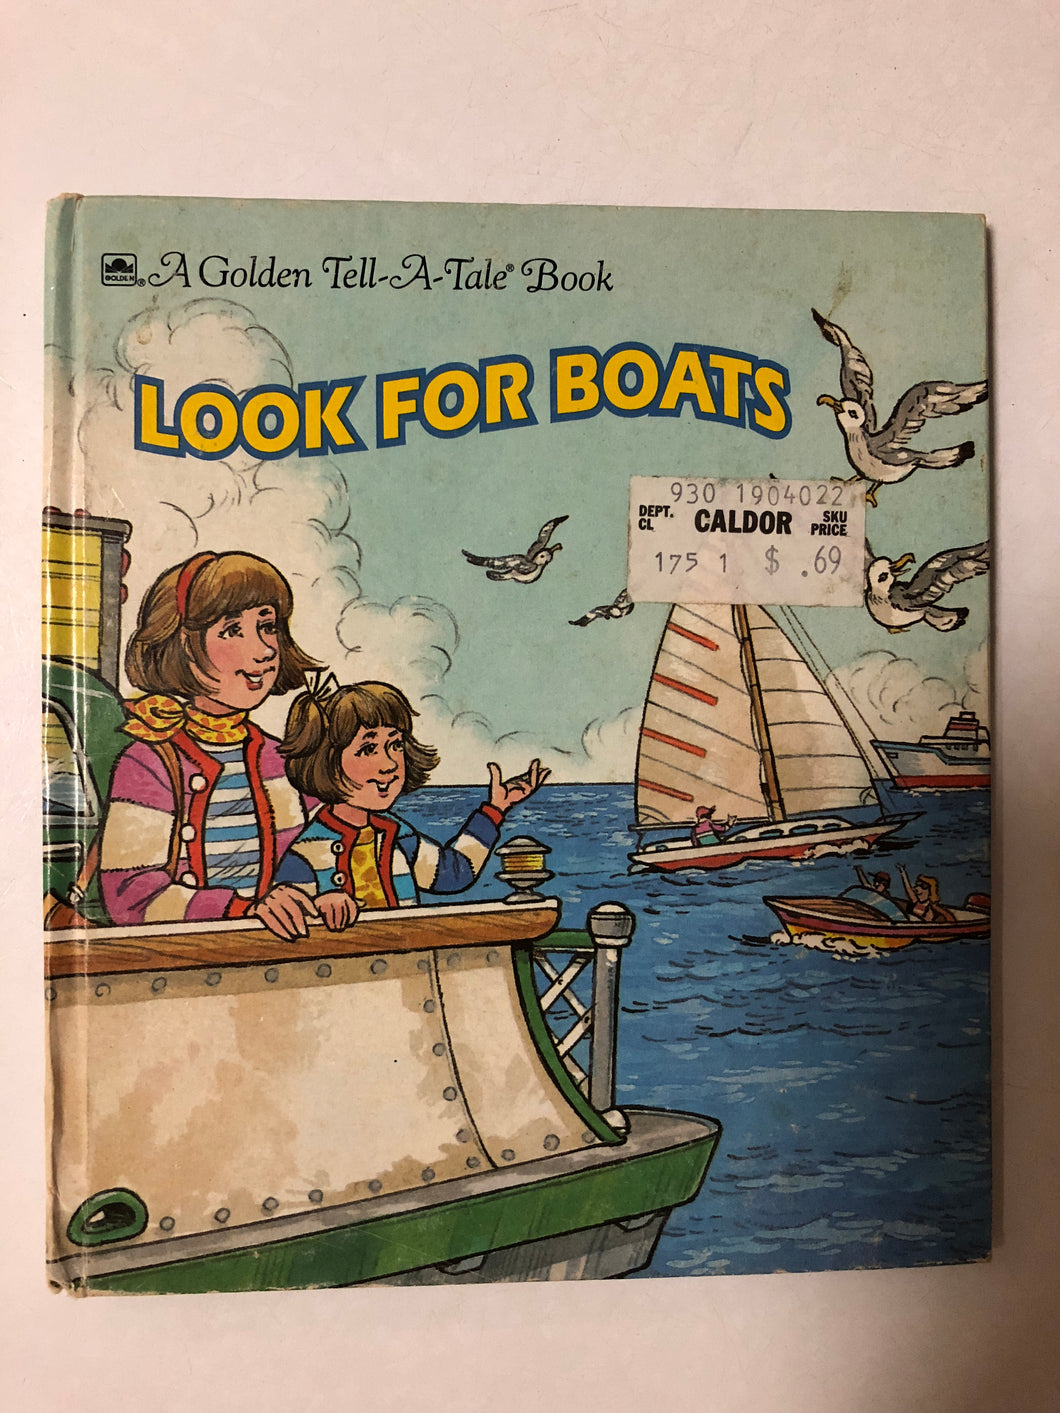 Look For Boats - Slick Cat Books